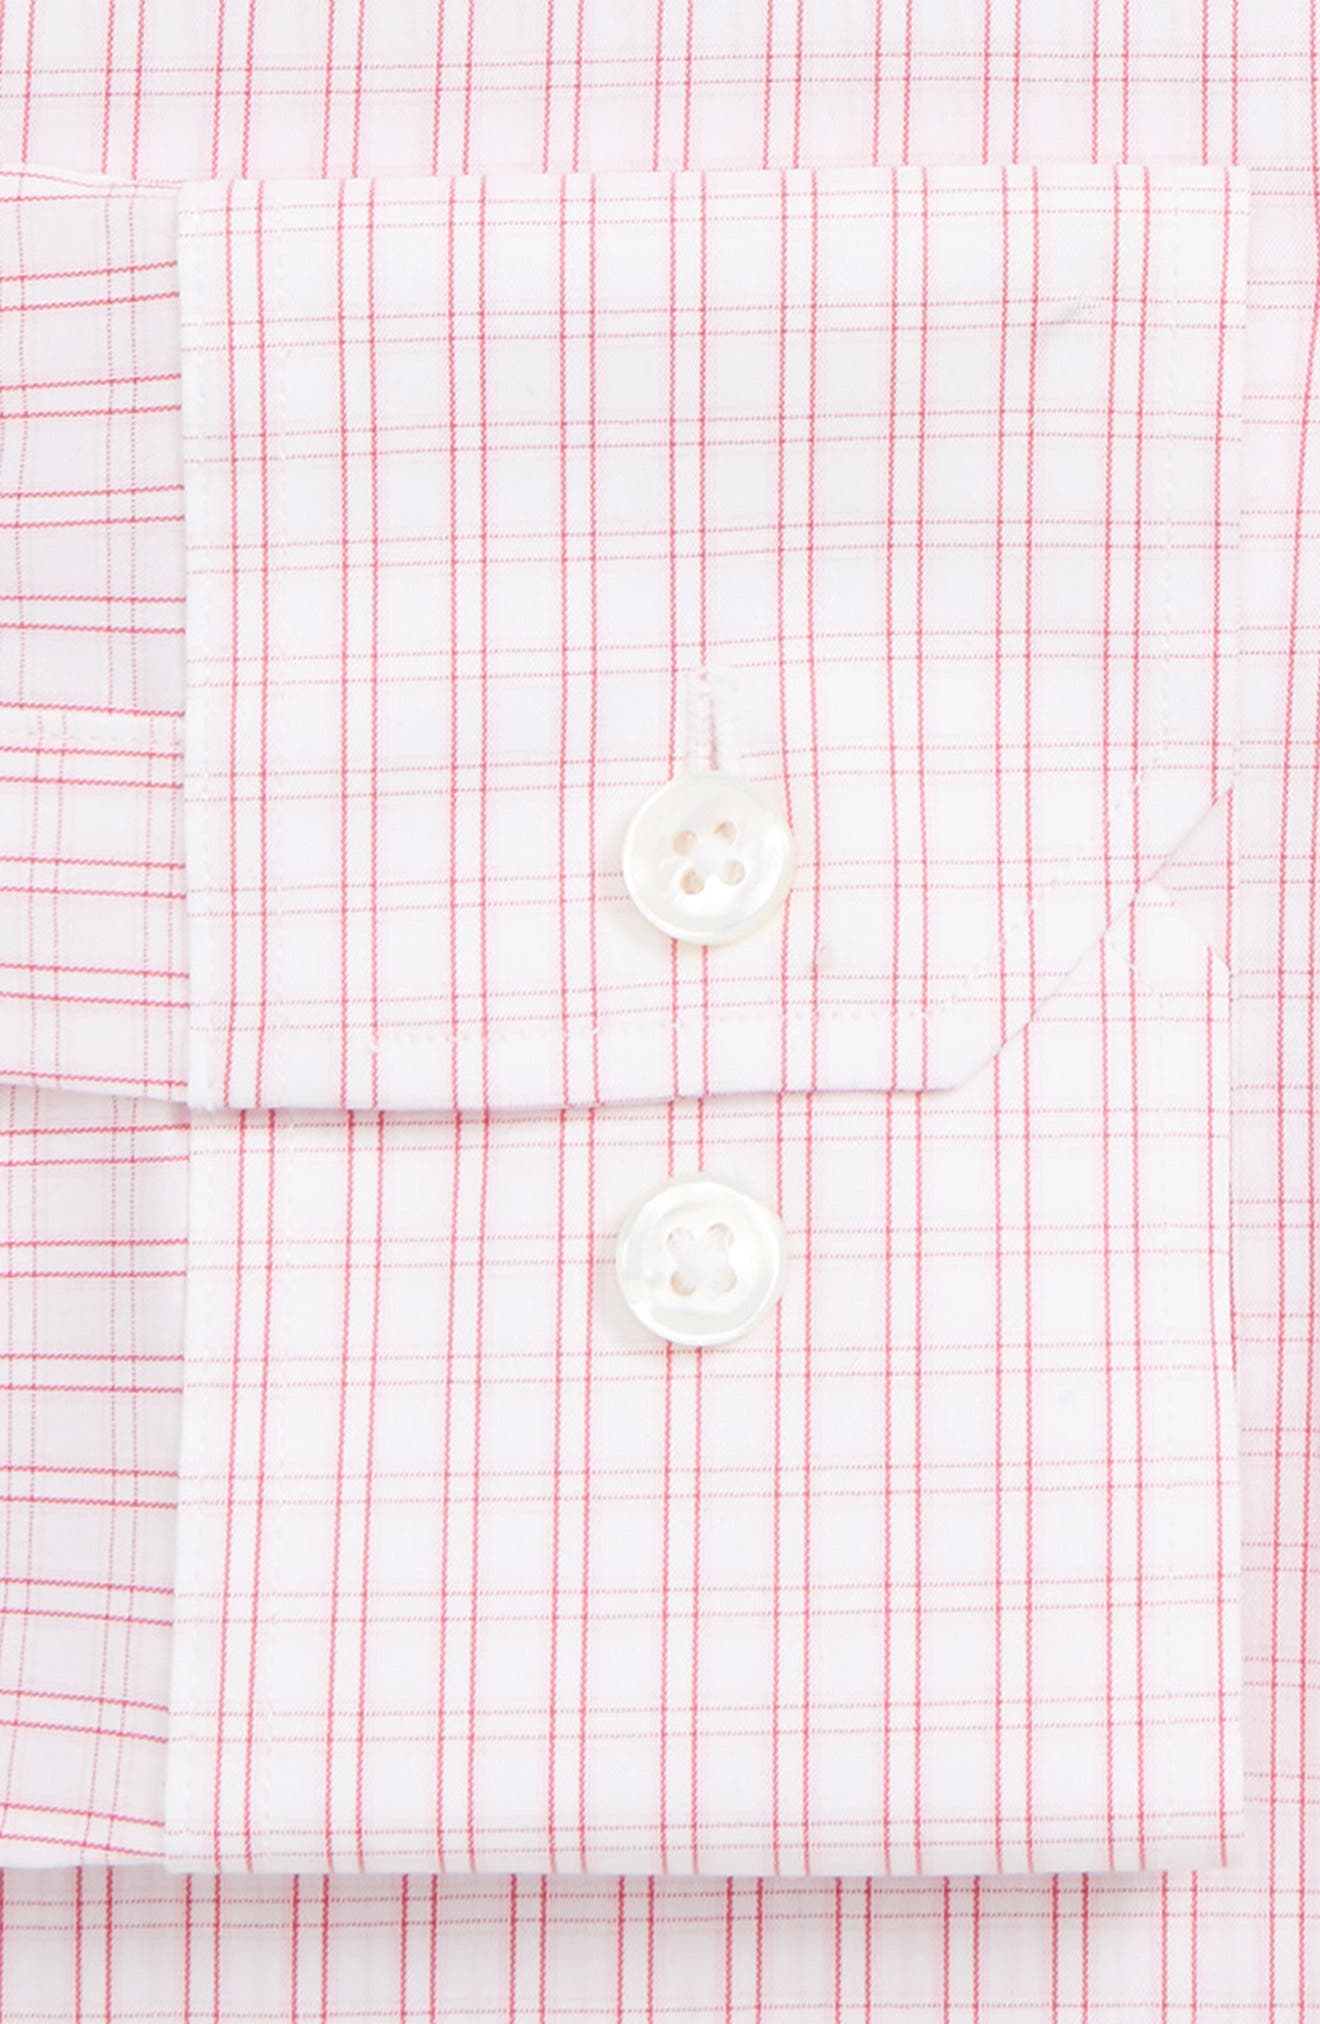 Raven Slim Fit Stretch Check Dress Shirt,                             Alternate thumbnail 2, color,                             SHOCKING POPPY